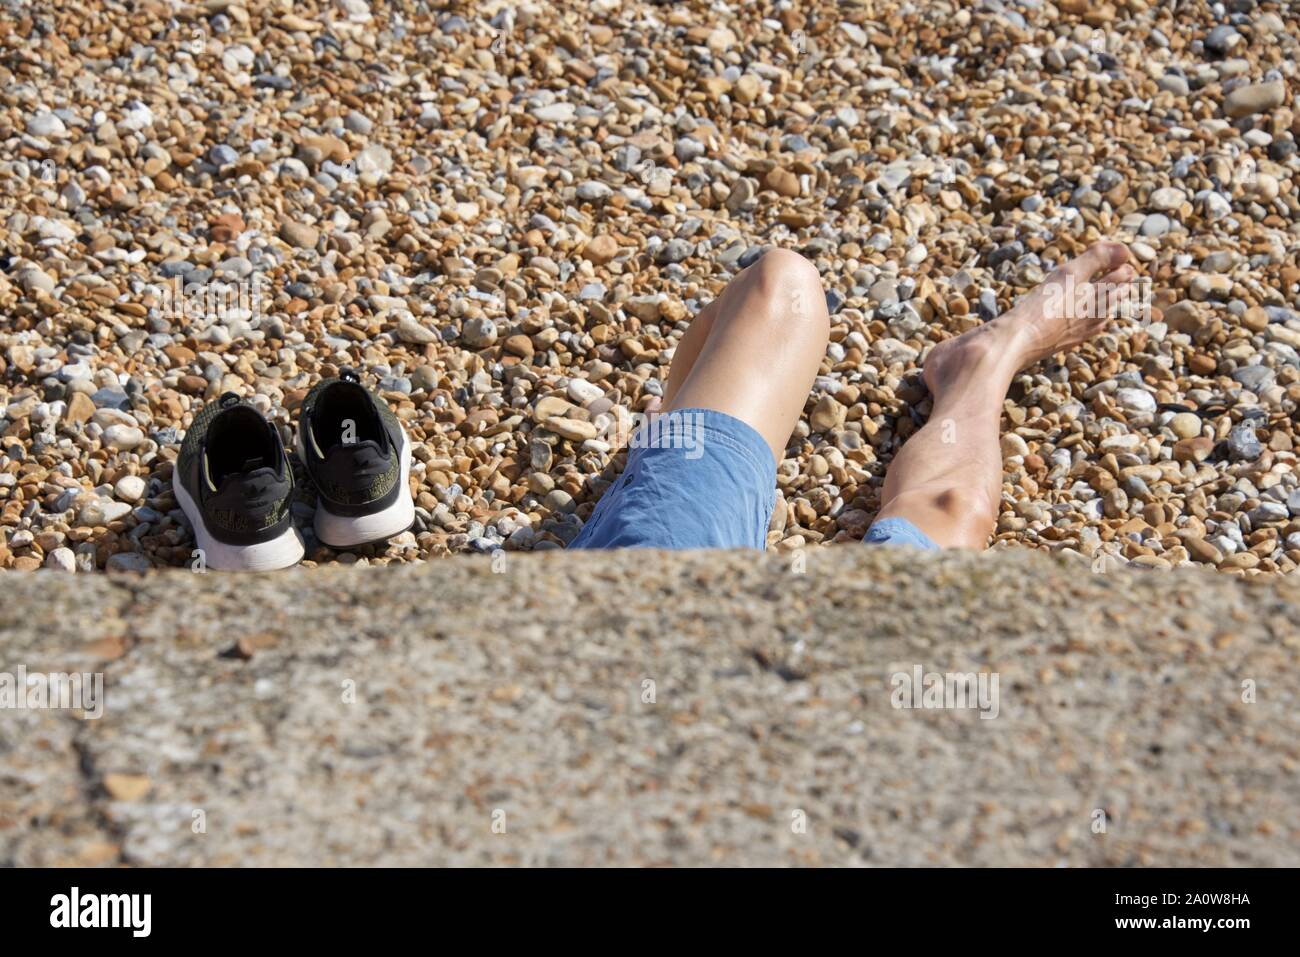 With footwear removed a young man relaxes on a pebble beach in the summer sun Stock Photo